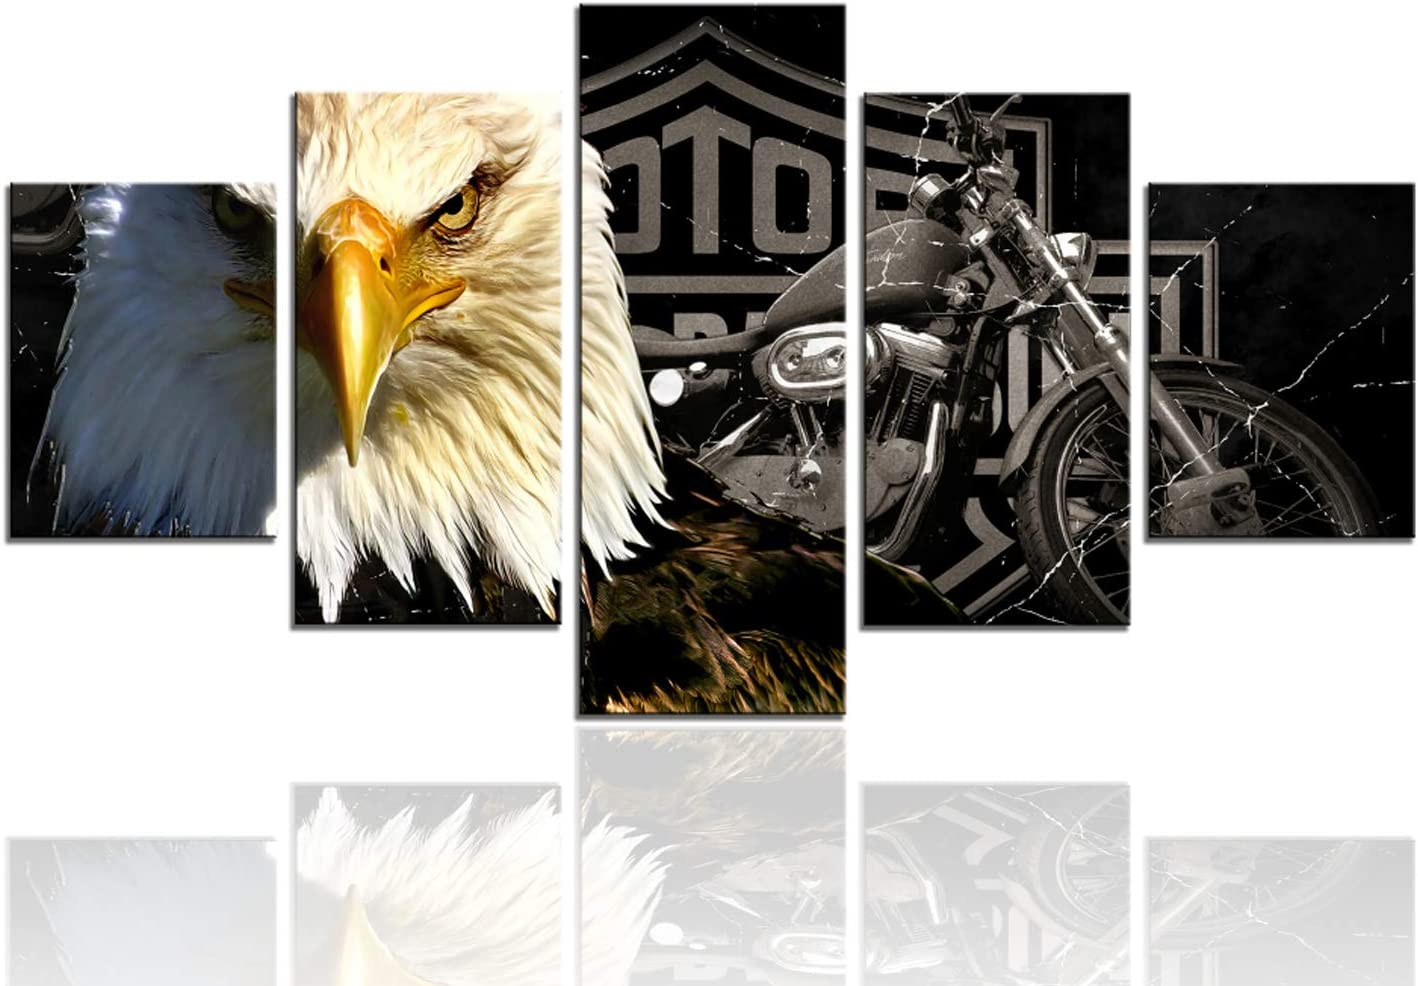 Meigan Art-Modern American Eagle Motorcycle Canvas Art Print for Large Wall Art Decoration, Set of 5 Panels, Ready to Hang